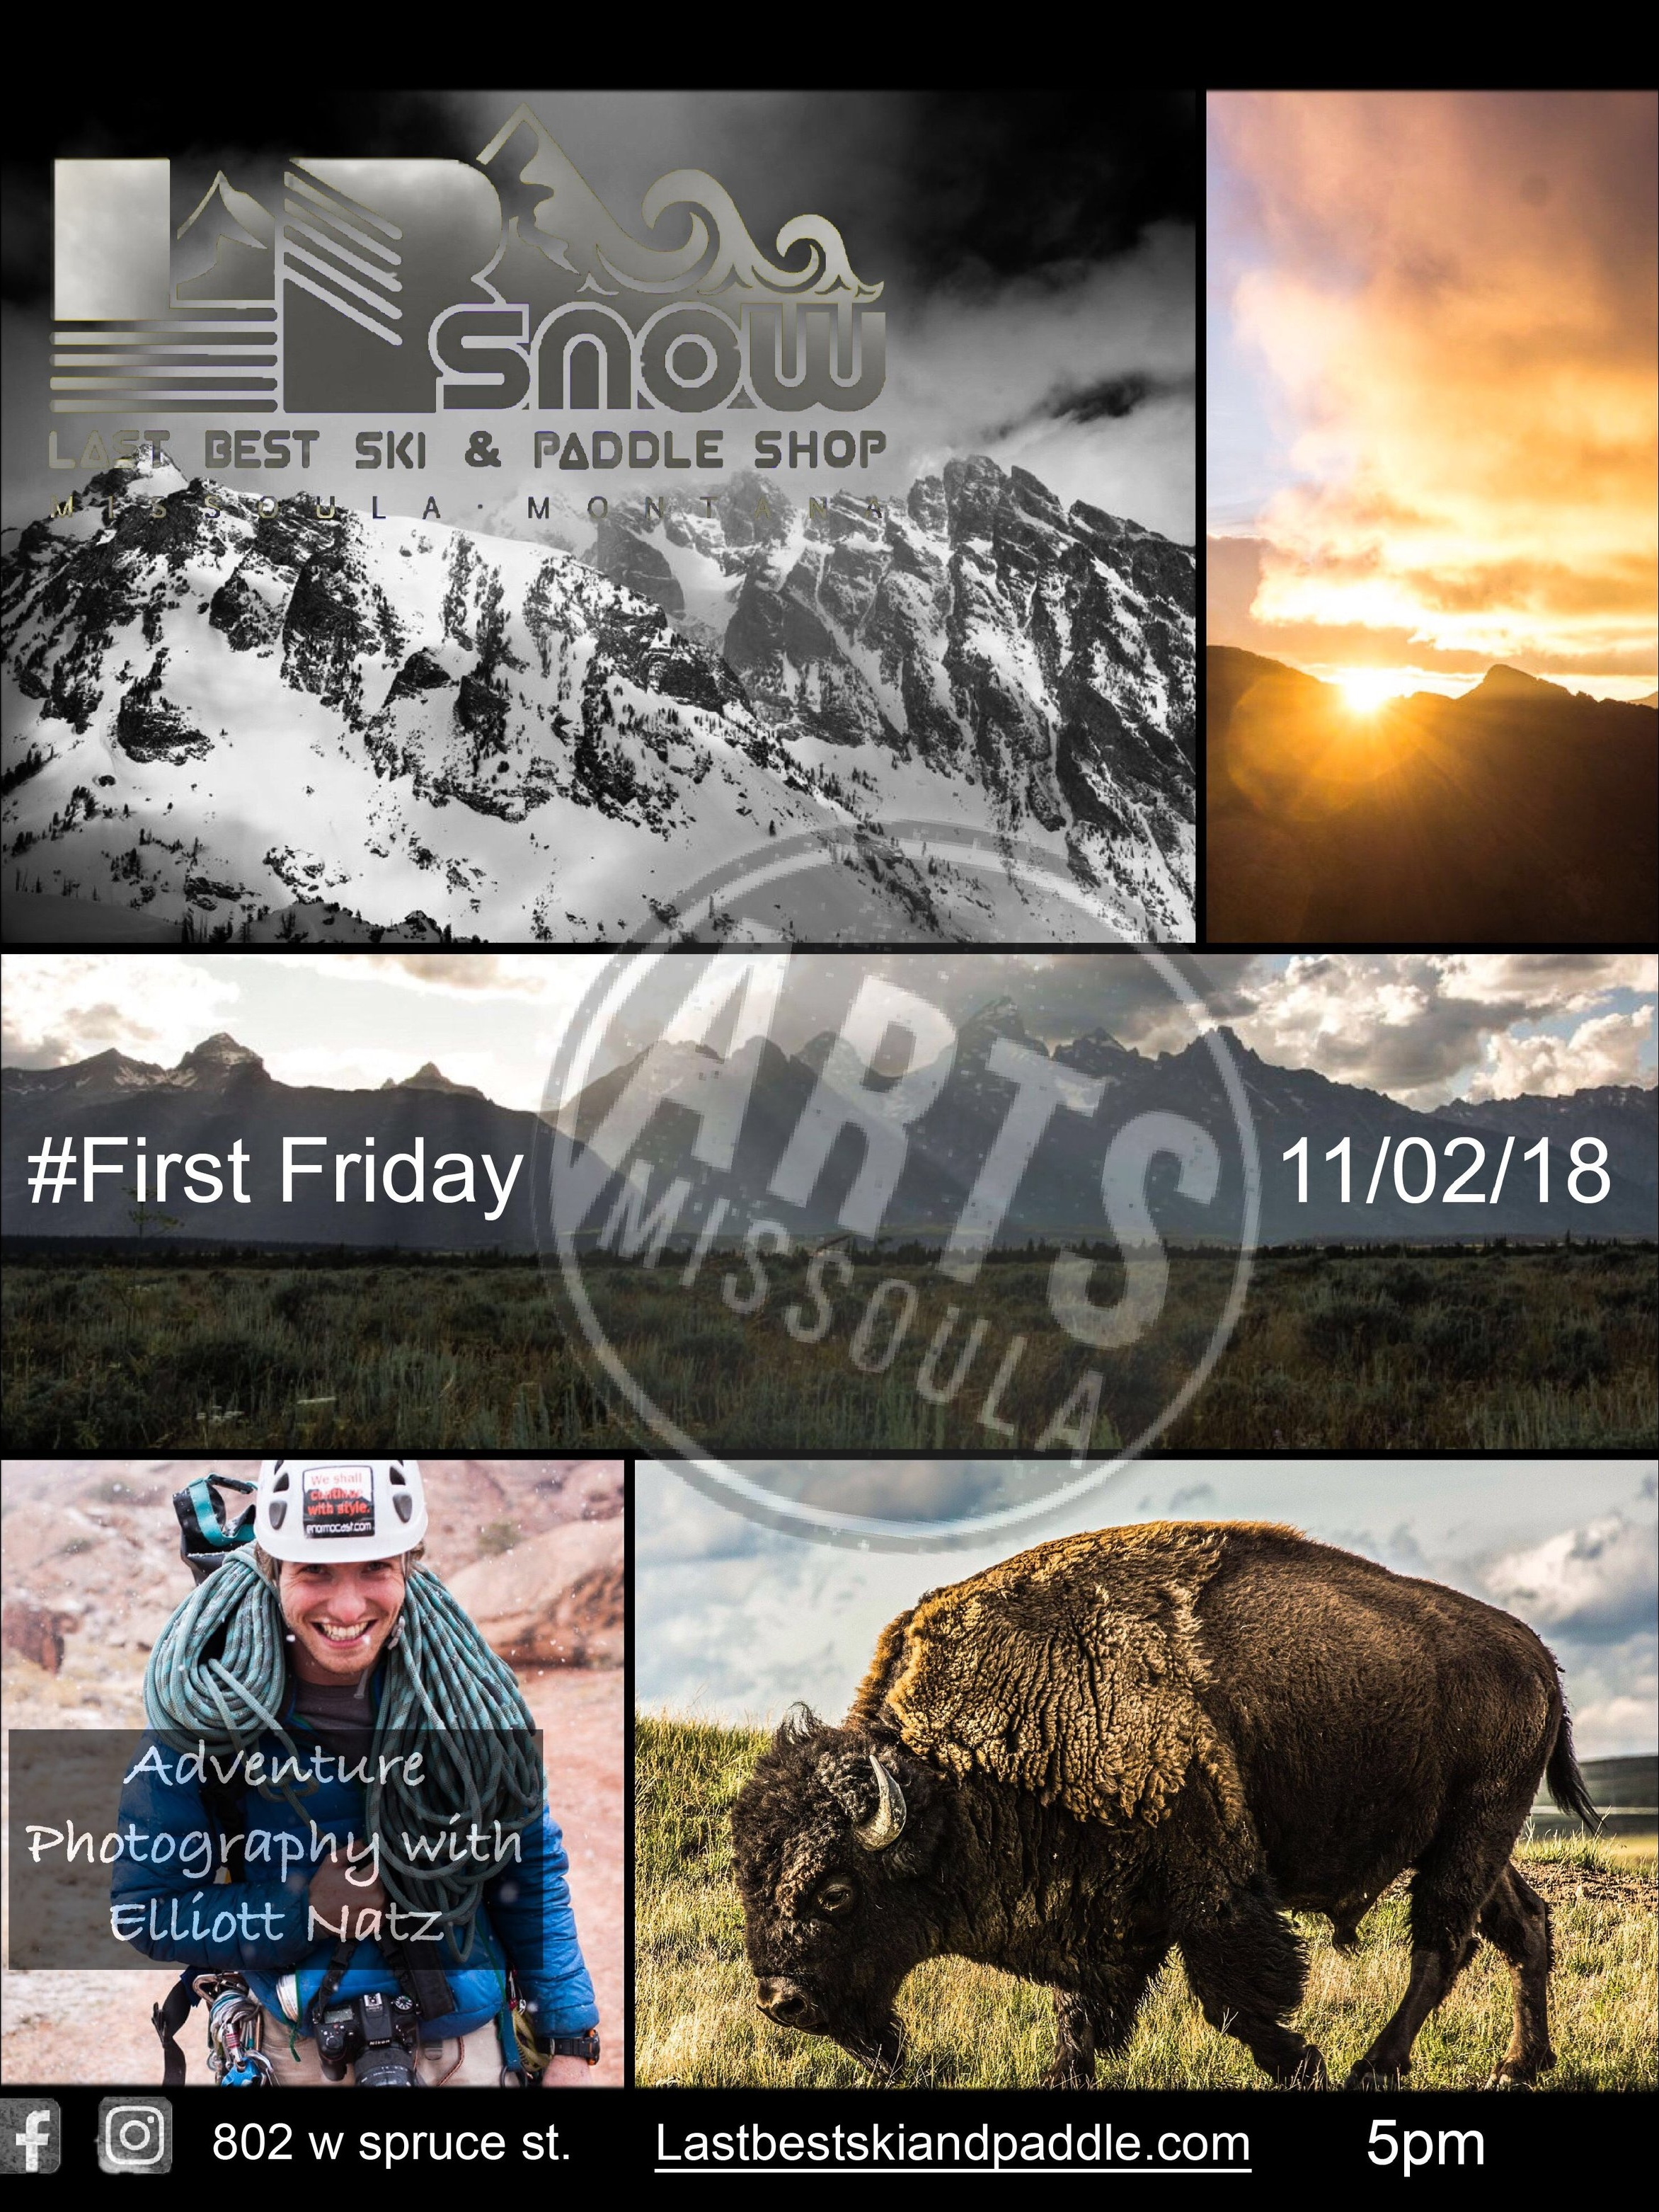 LB SNOW will be hosting Elliott Natz, an adventure photographer on Nov 2nd, 2018.  A fun evening with snacks, beverages, and visual art to celebrate local artists in Missoula.